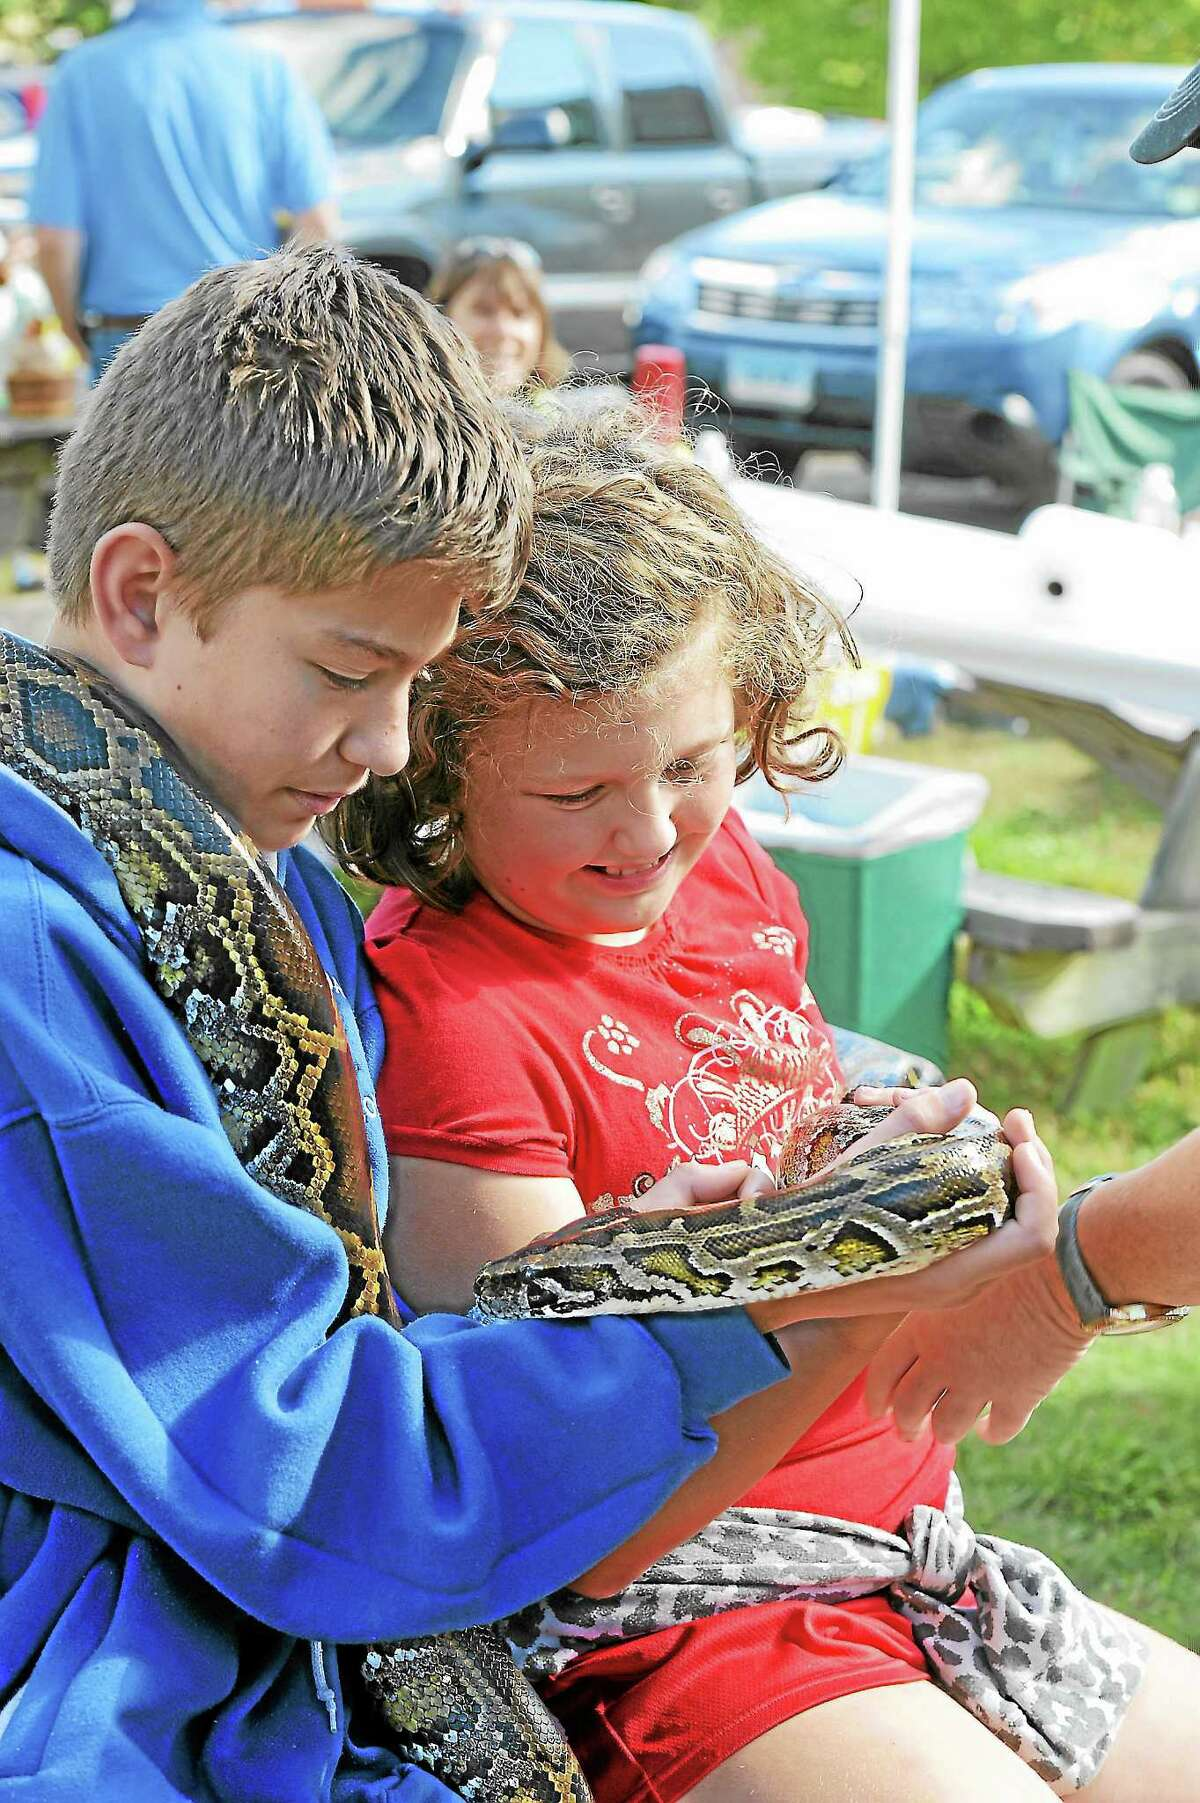 Brooke & Mitchel Kvedar of Burlington with a boa constrictor at the 32nd annual Family Nature Day at White Memorial Conservation Center in Litchfield.Laurie Gabaordi - Register Citizen